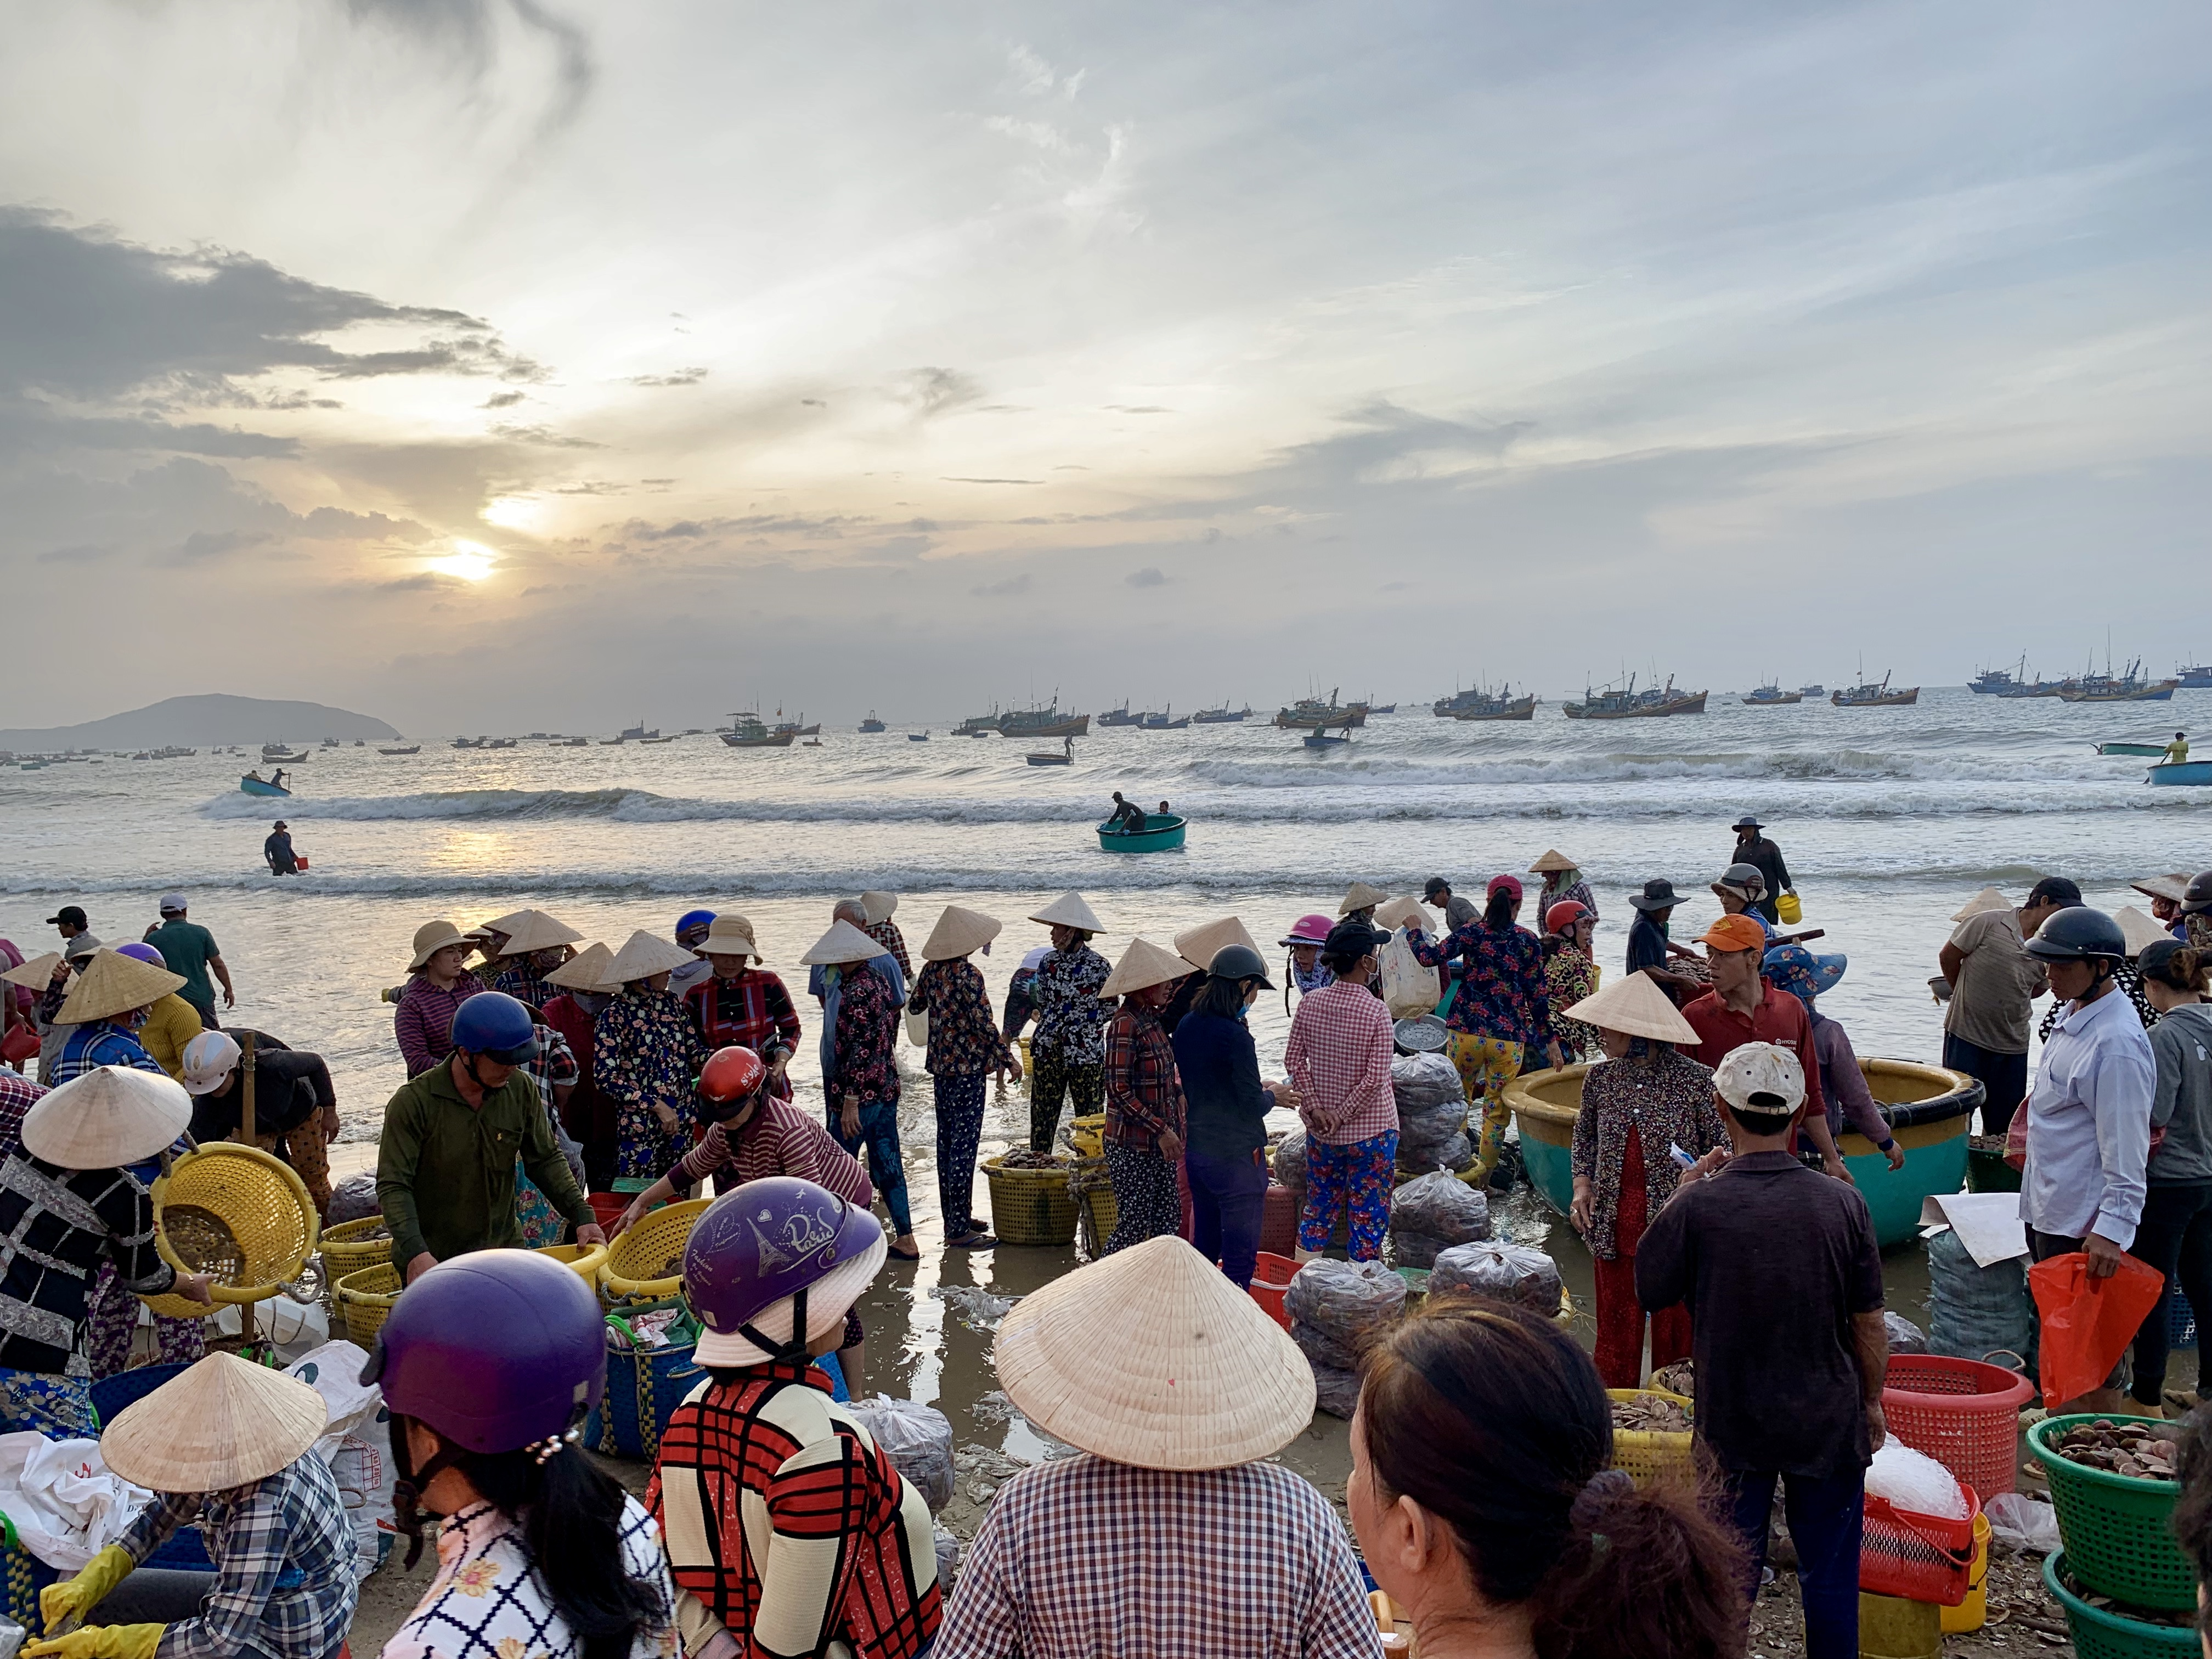 Merchants wait on a beach for fresh seafood to arrive in conical boats at a local fishing village in Mui Ne, Vietnam July 31, 2019. Photo: Tran Phuong / Tuoi Tre